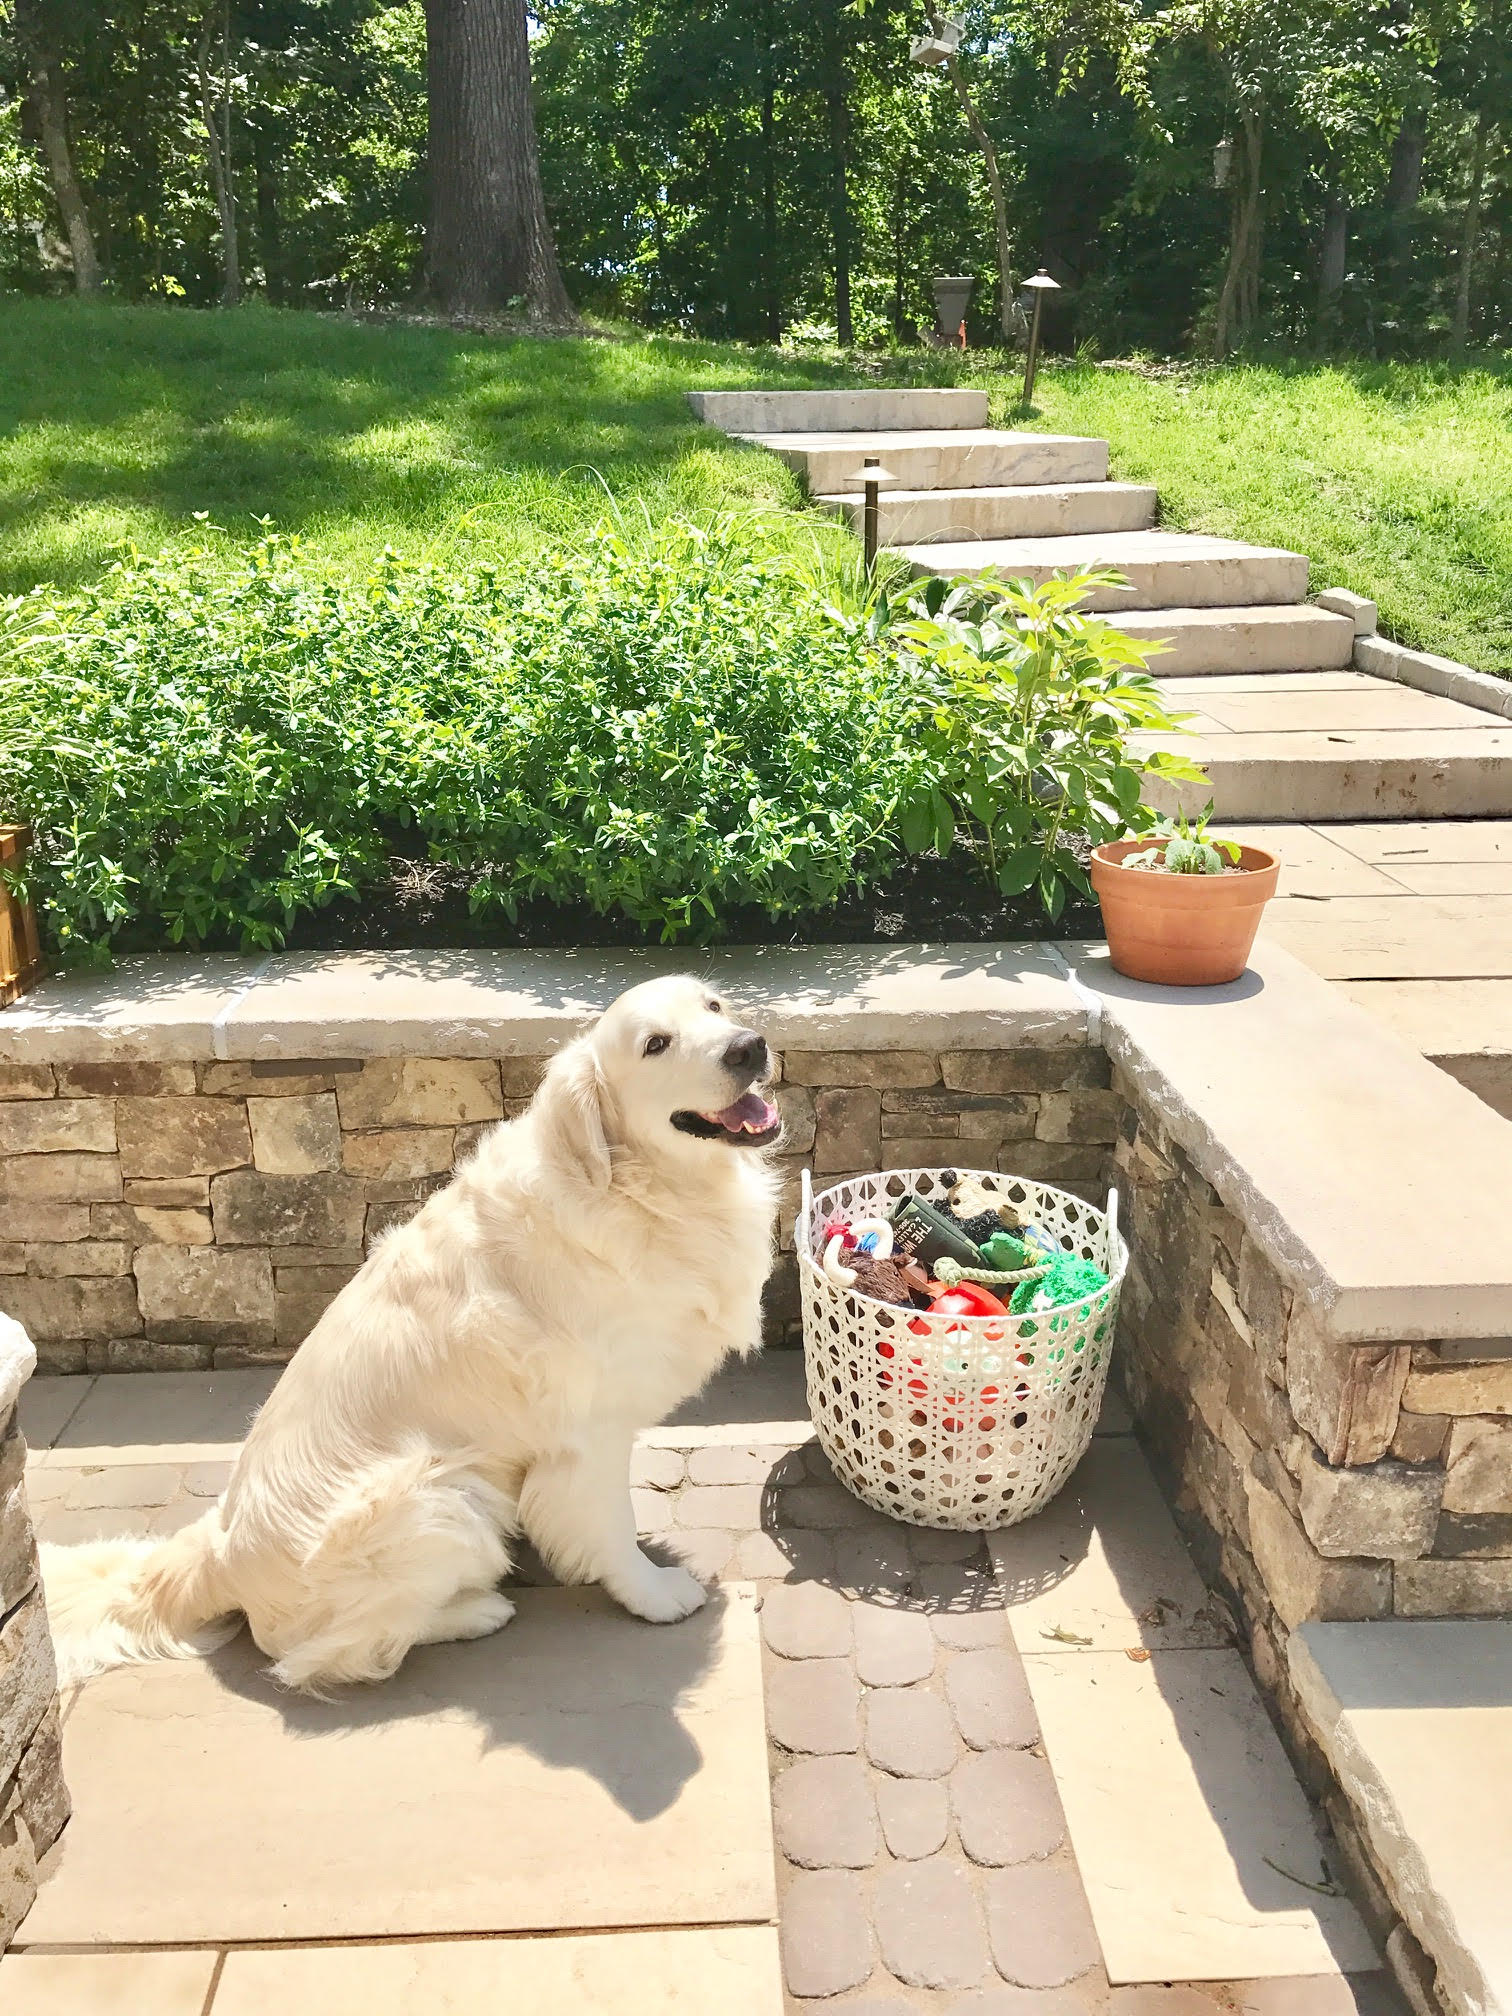 he seems quite pleased with his new outdoors organization.